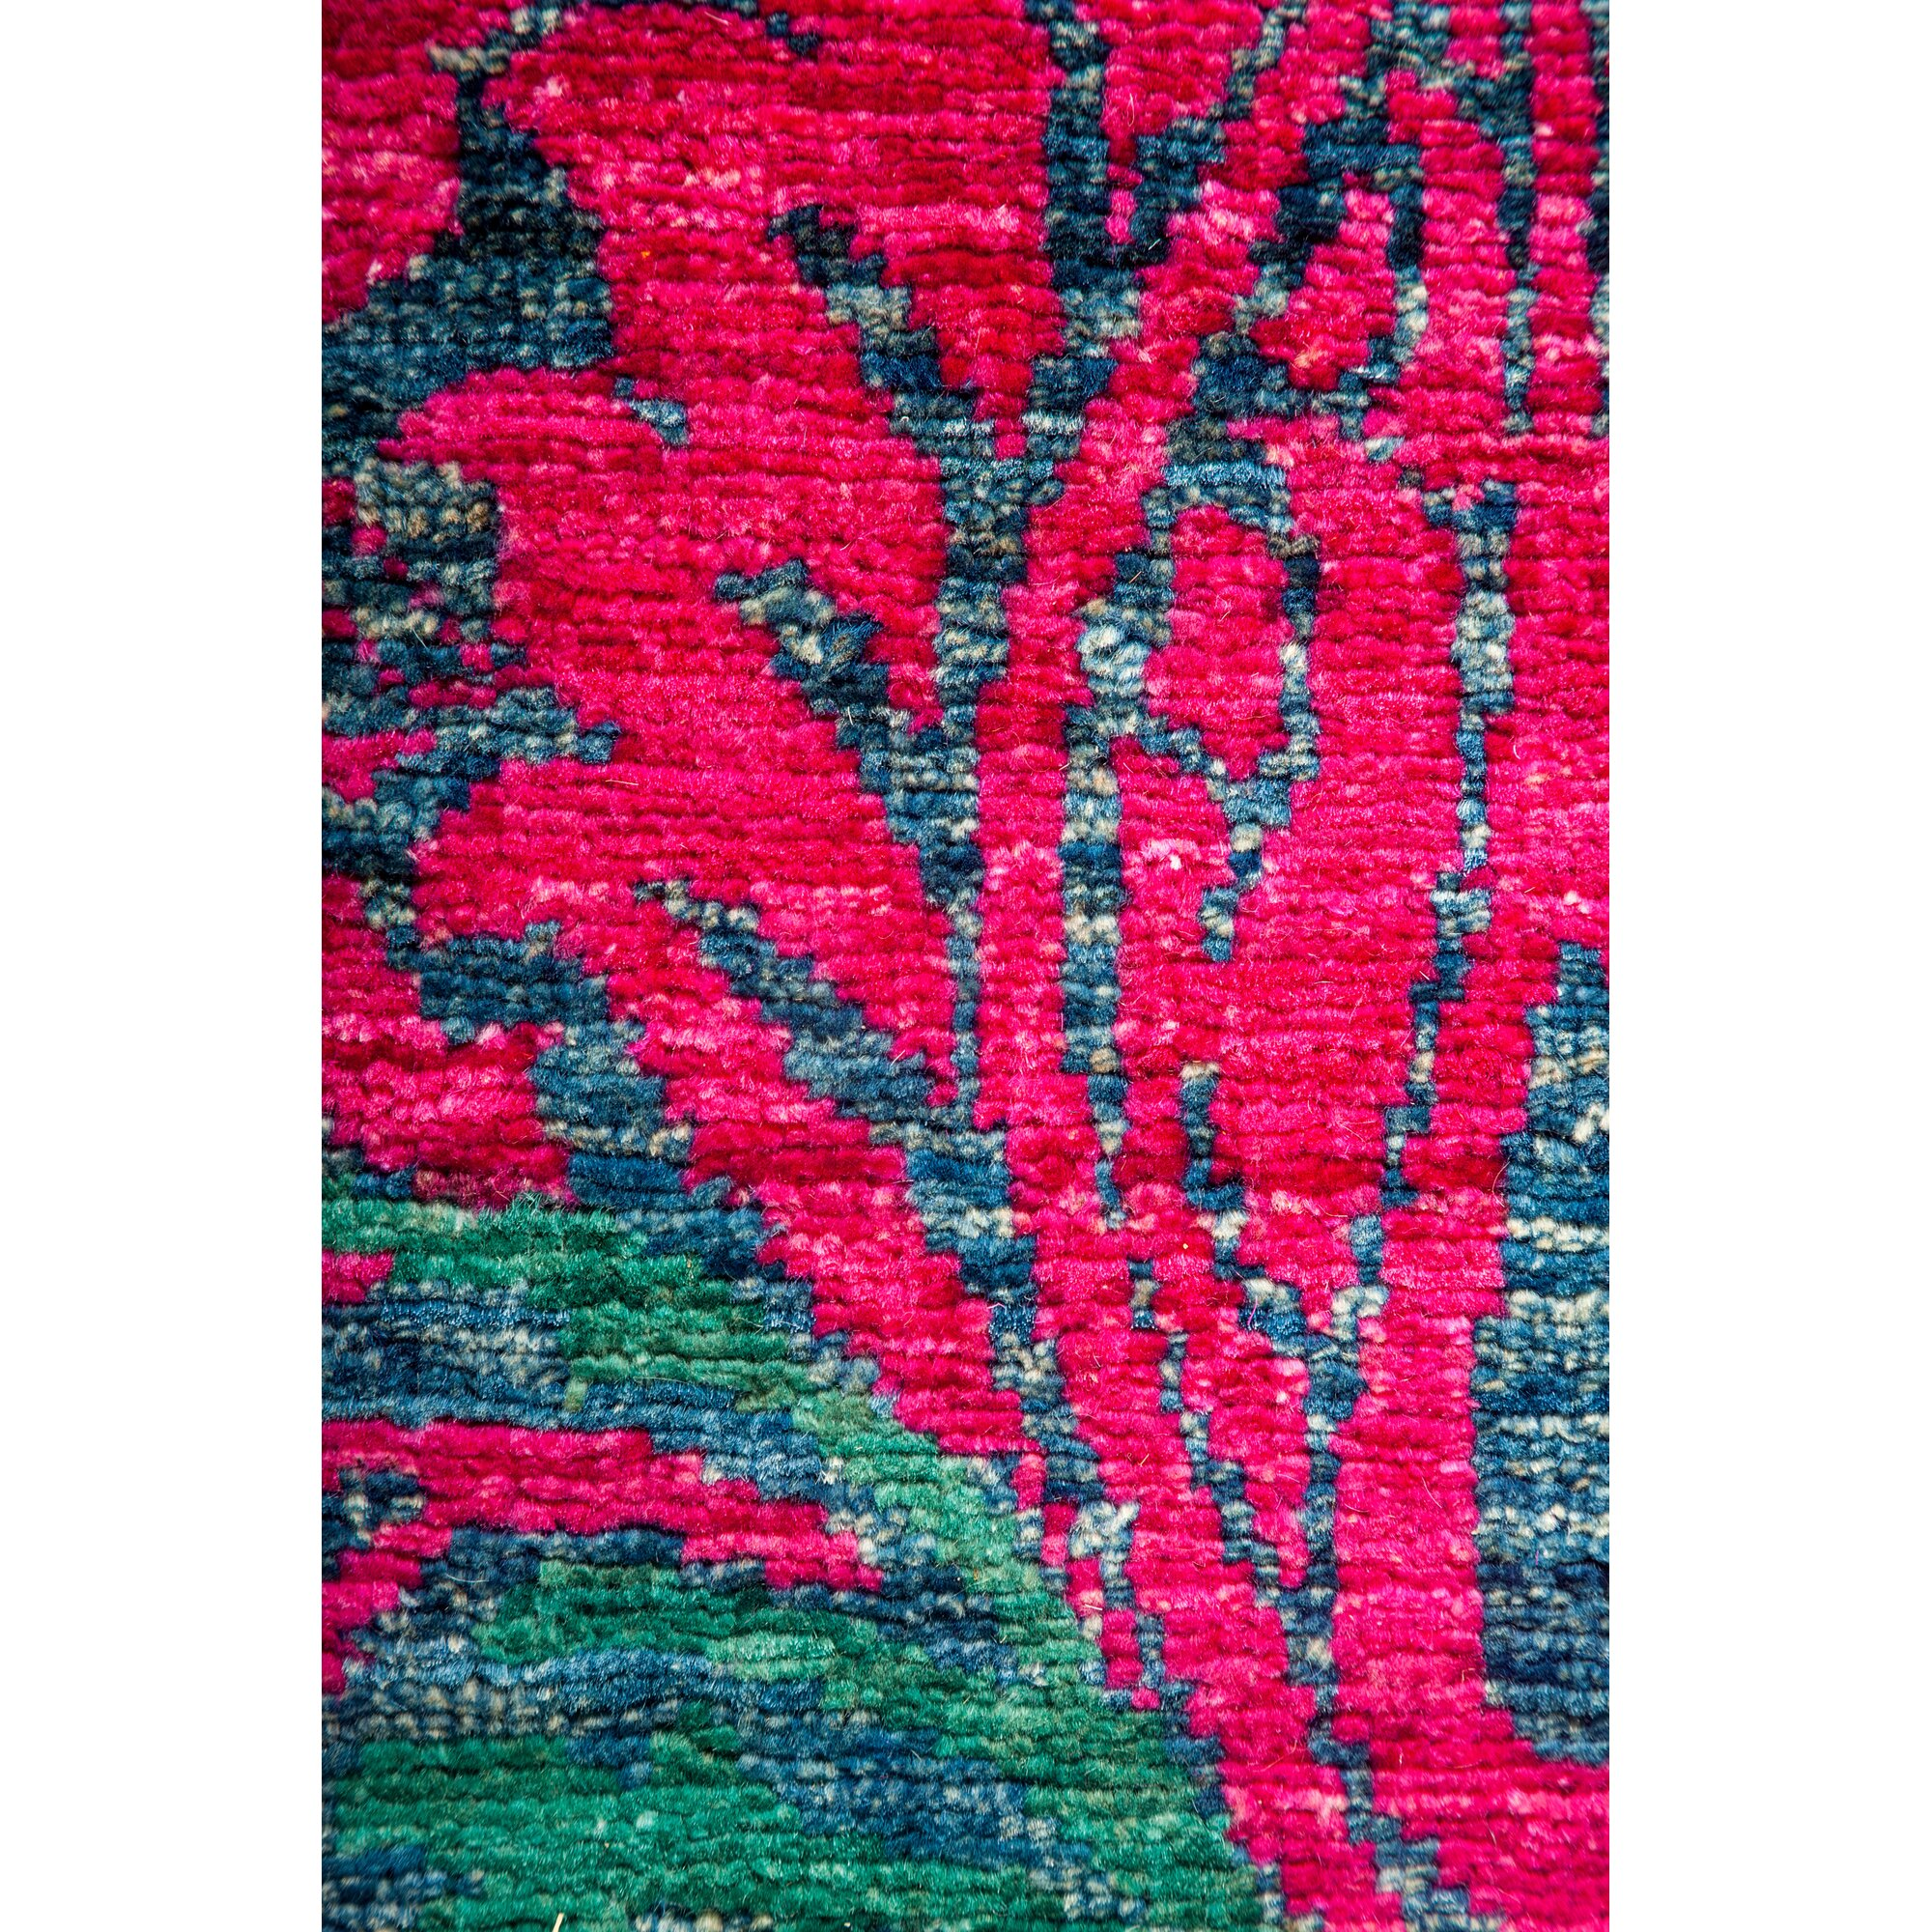 darya rugs arts and crafts hand knotted pink blue area rug. Black Bedroom Furniture Sets. Home Design Ideas